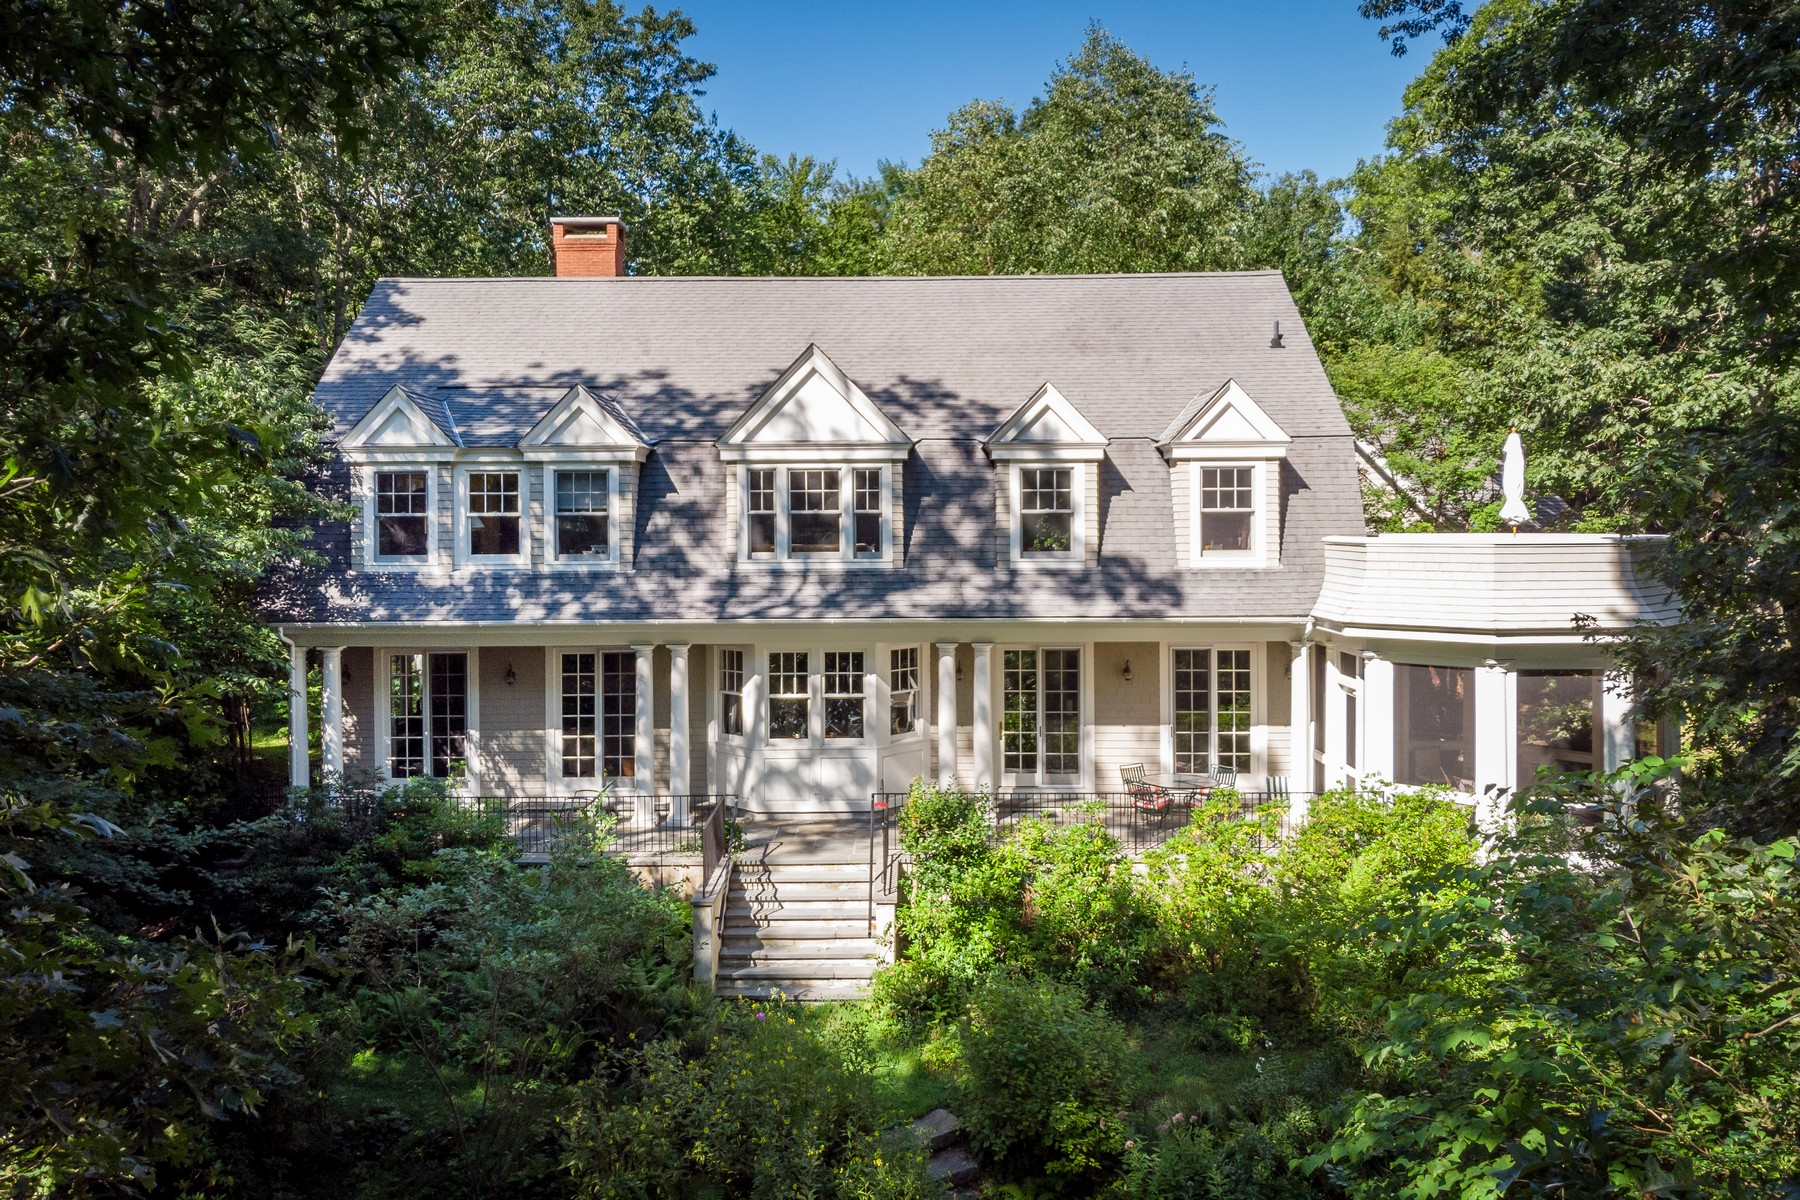 Single Family Home for Sale at Privacy and Stunning Views on 2.6 Waterfront Acres 25 Talcott Farm Road Old Lyme, Connecticut 06371 United States